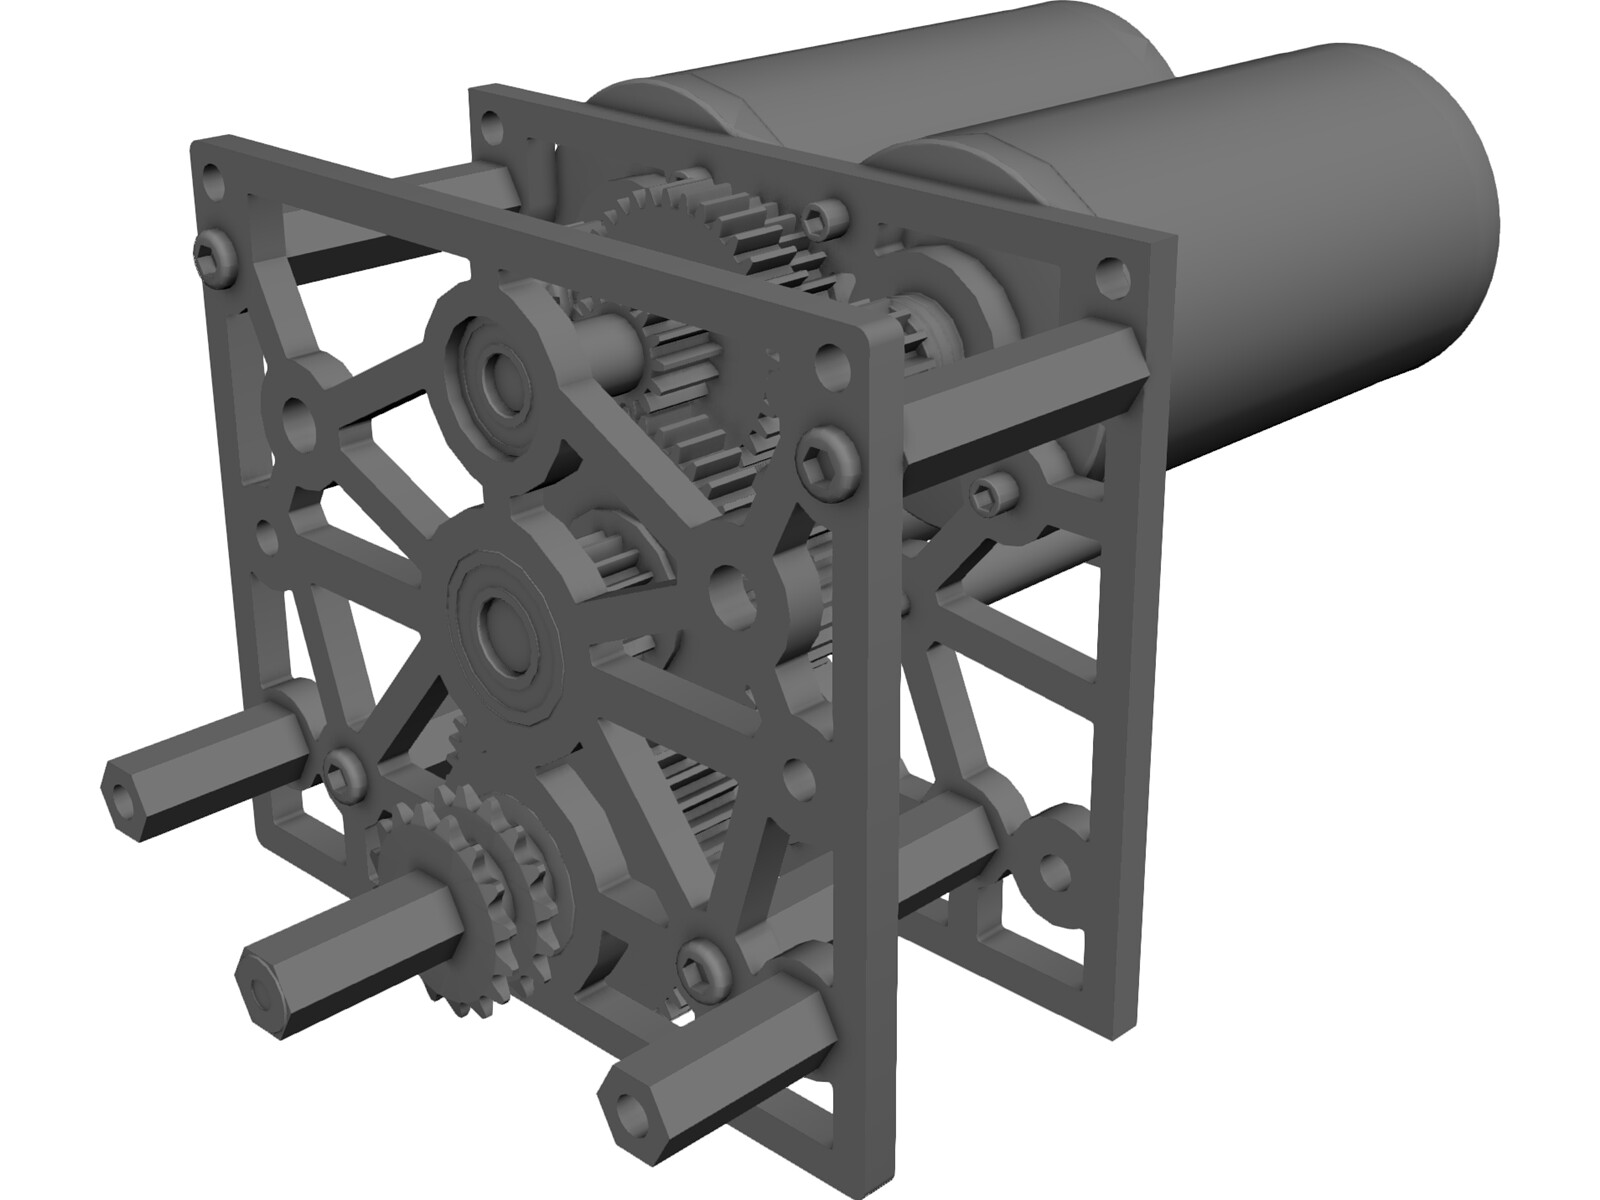 Team 3008 FRC Gearbox [NURBS] 3D Model